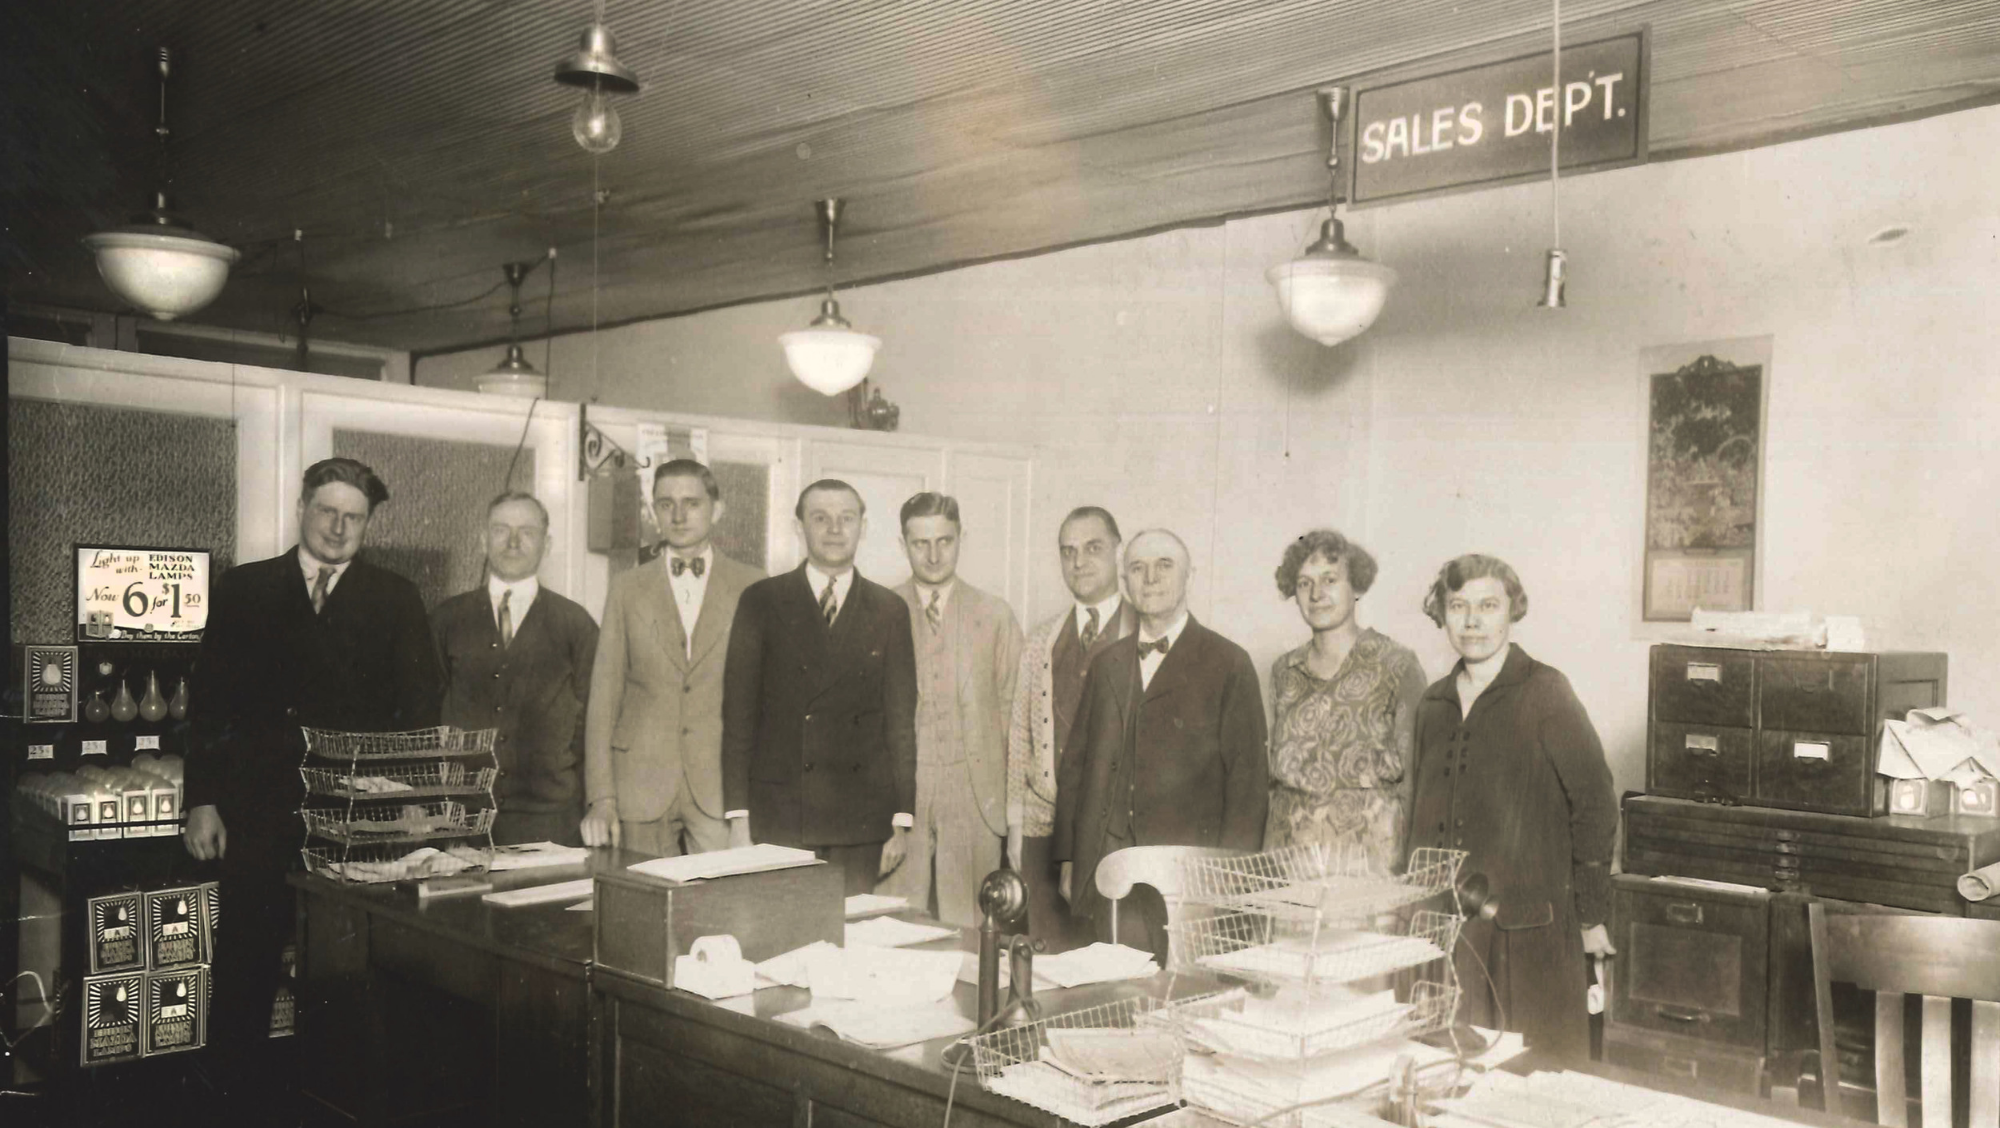 A photo of the early days of Crescent Electric's Sales Department.